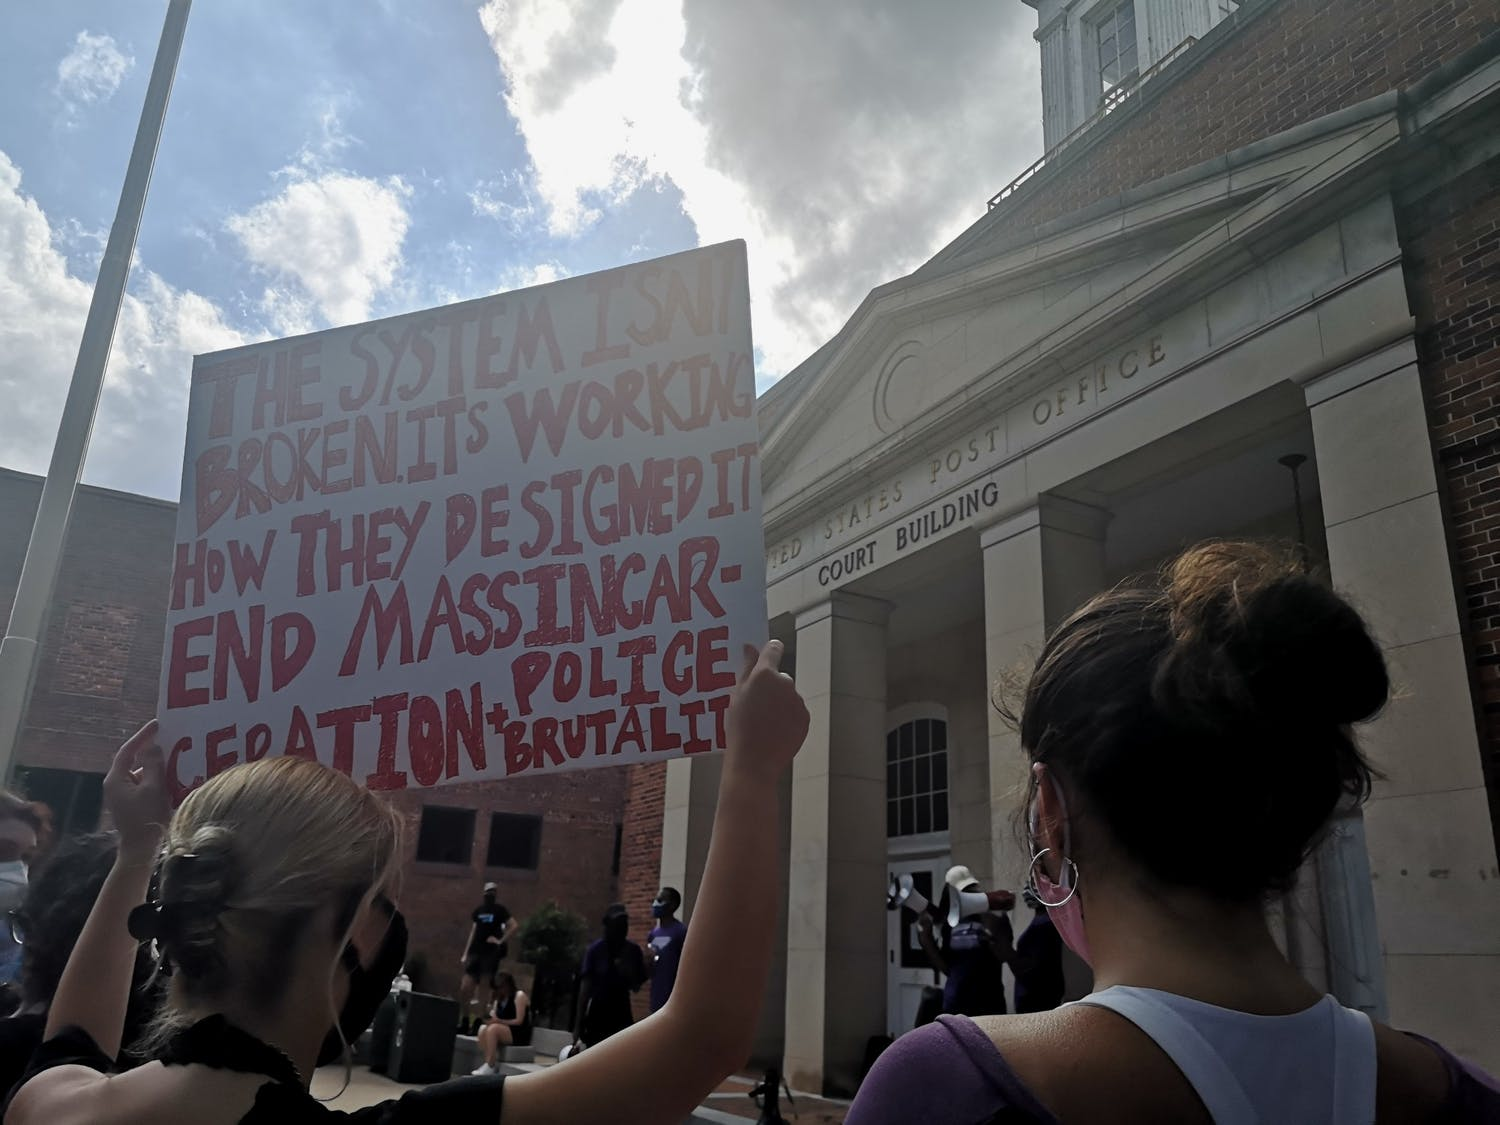 Protestors gather outside the Peace and Justice Plaza on Friday, June 5, 2020 to protest against police brutality after the recent deaths of George Floyd, Breonna Taylor, Ahmaud Arbery, and other Black Americans.